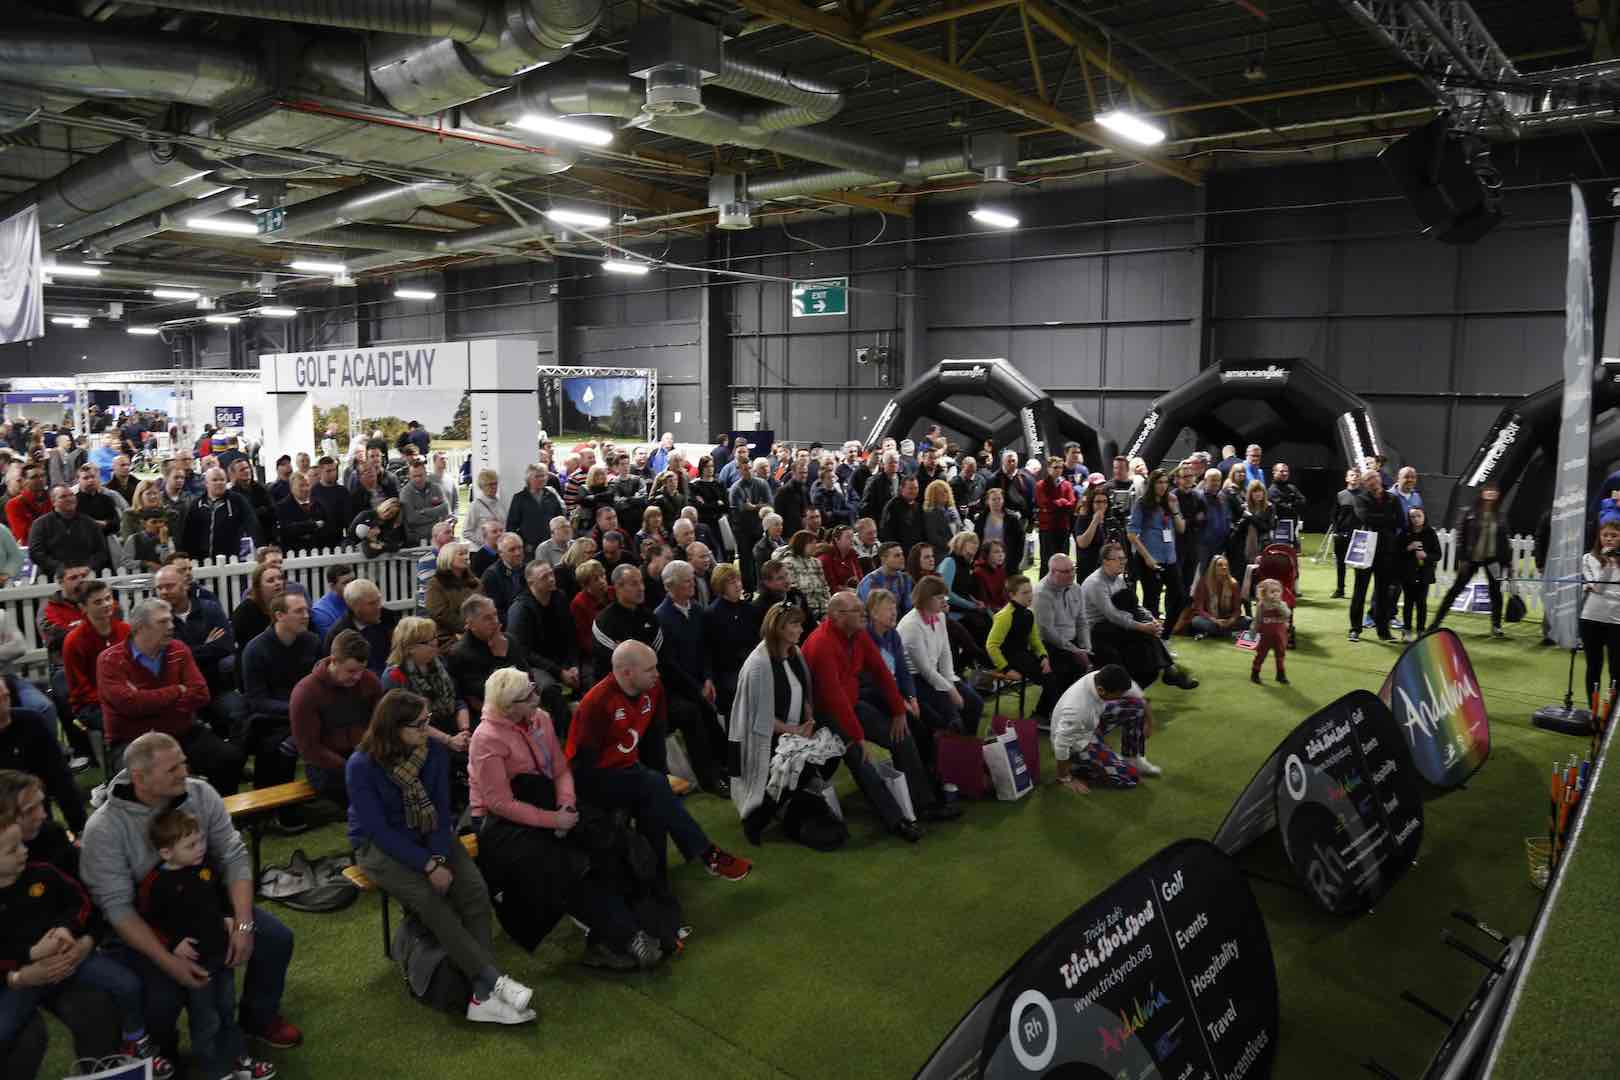 Free golf shows to be launched across UK